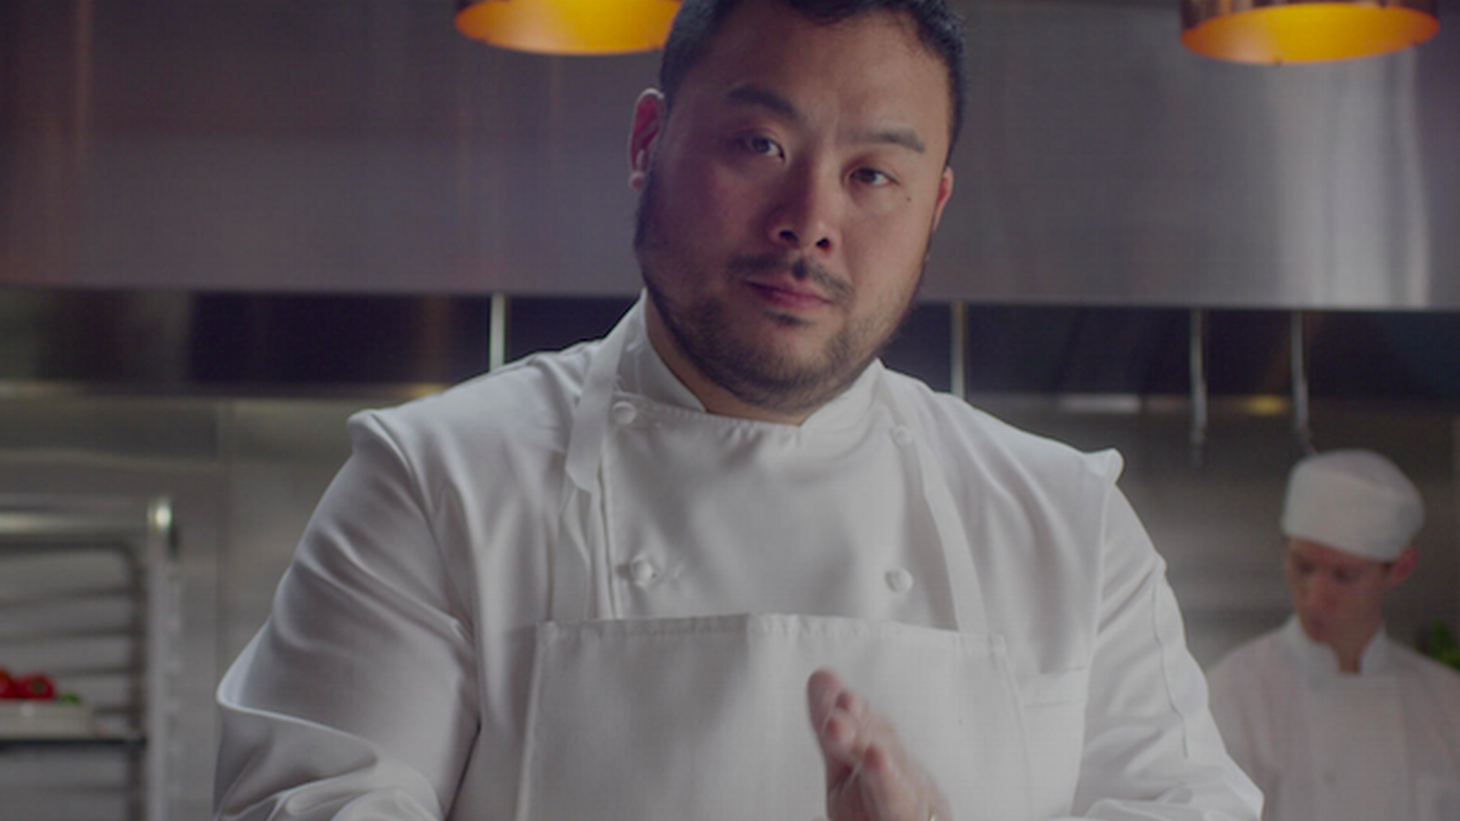 Food media is having a reawakening thanks to a few new trendsetters. David Chang is changing how we eat, learn about, and talk about food with his Netflix series.